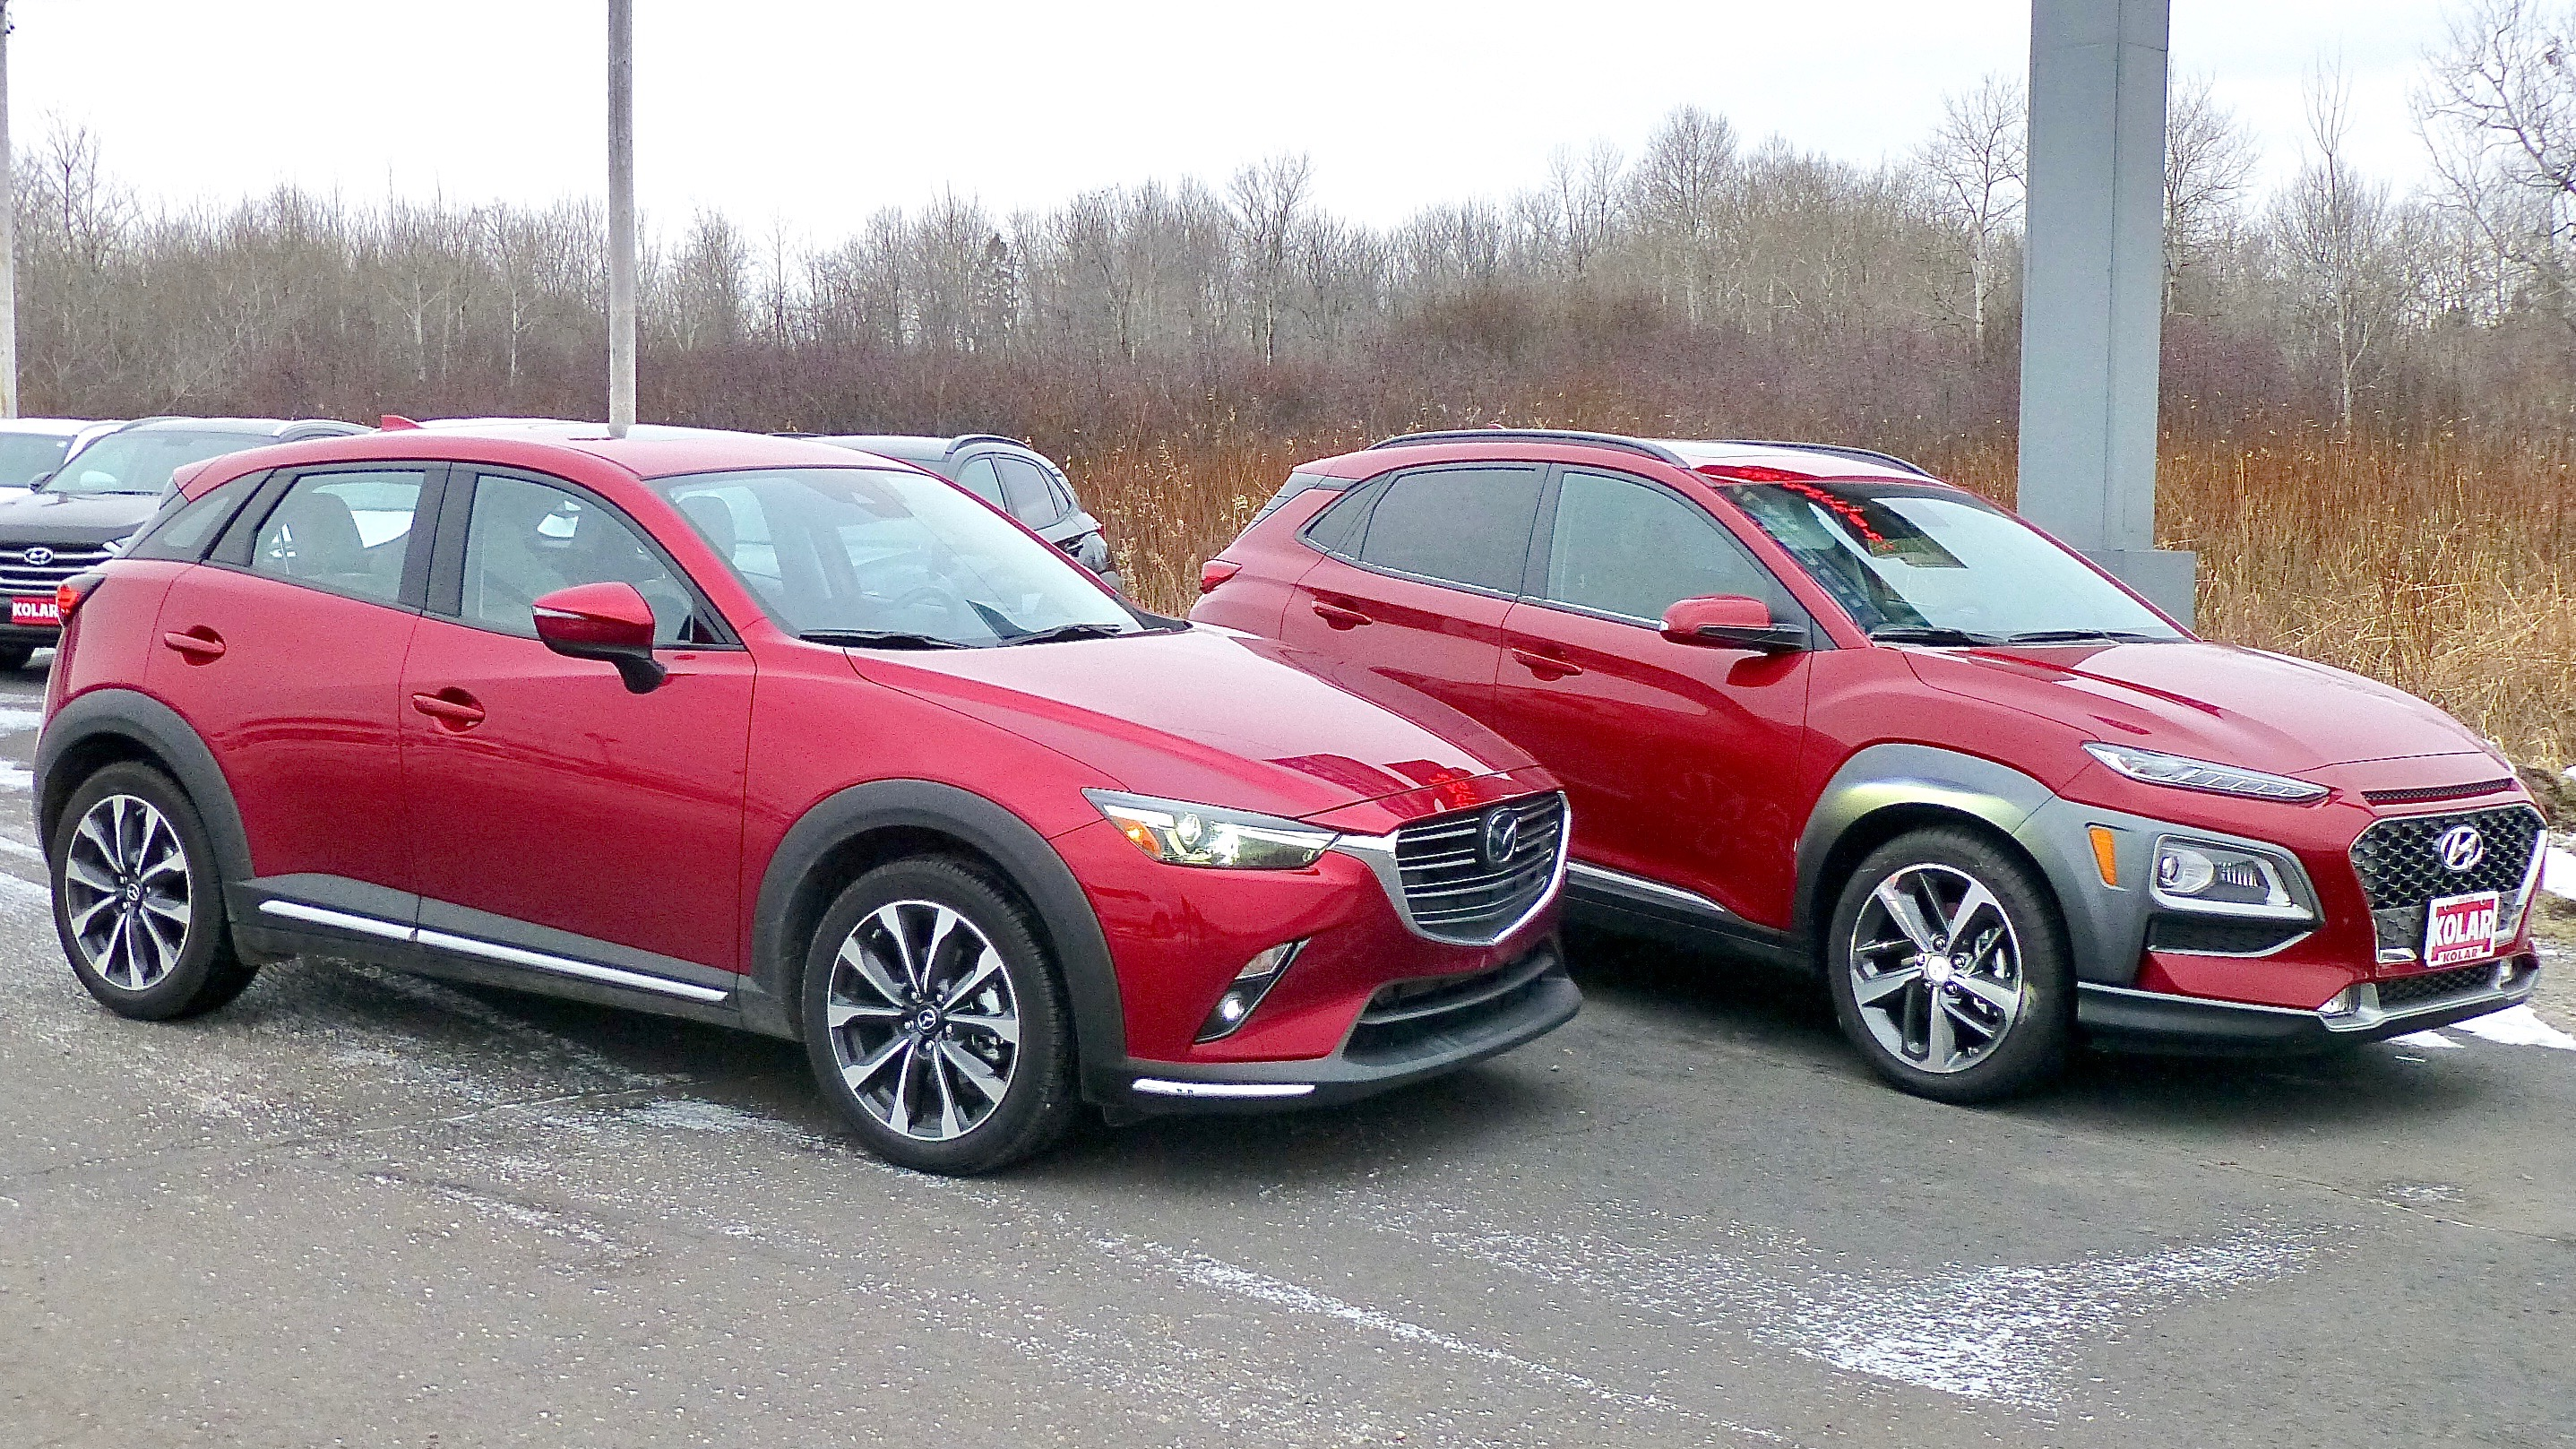 Two Of The Best Inexpensive But High Tech Compact Suvs Are Mazda Cx 3 Left And Hyundai Kona